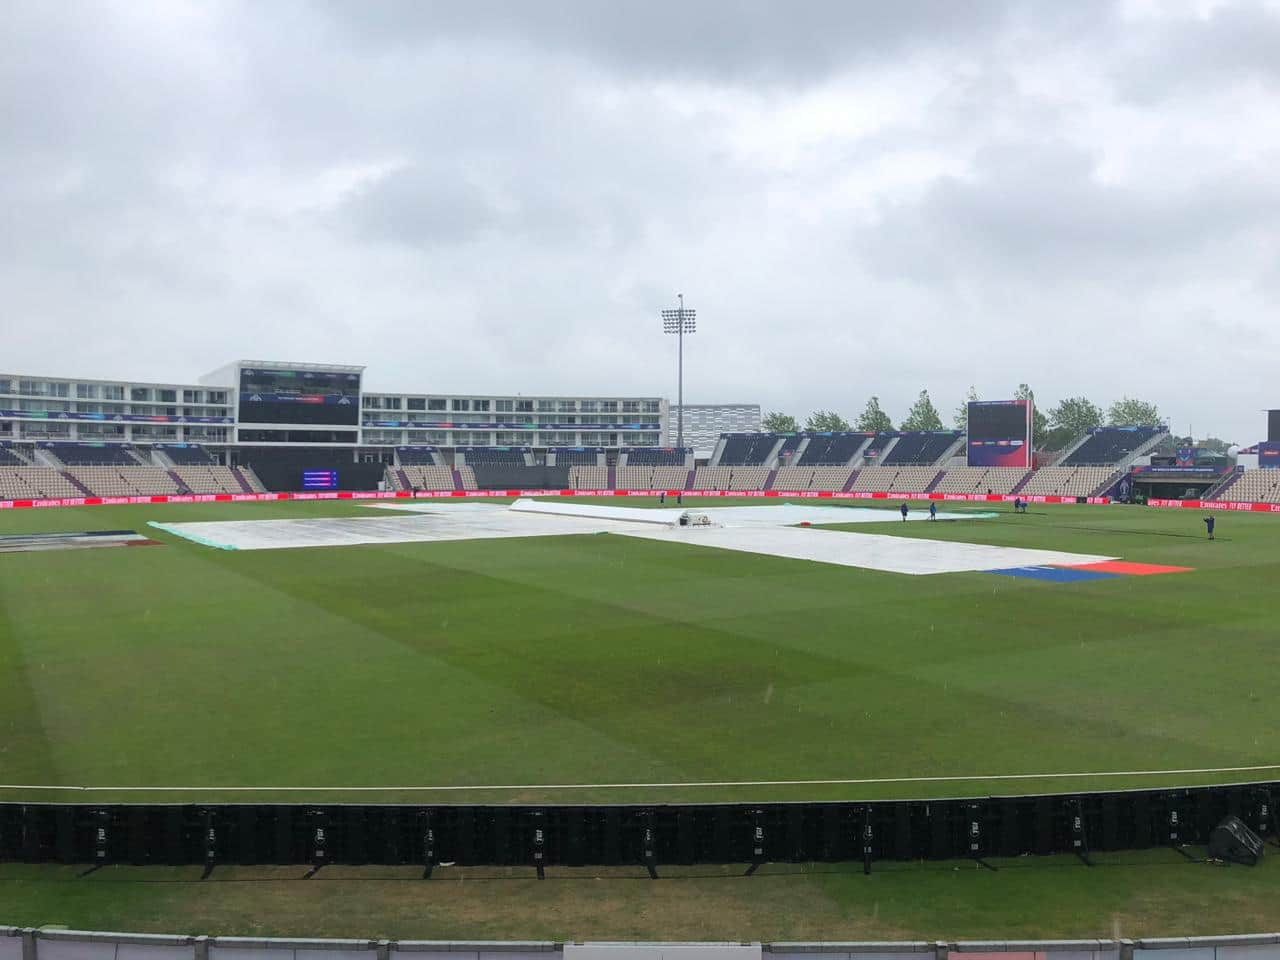 ICC Cricket World Cup 2019: Rain Unlikely To Affect CWC Tie Between India And South Africa